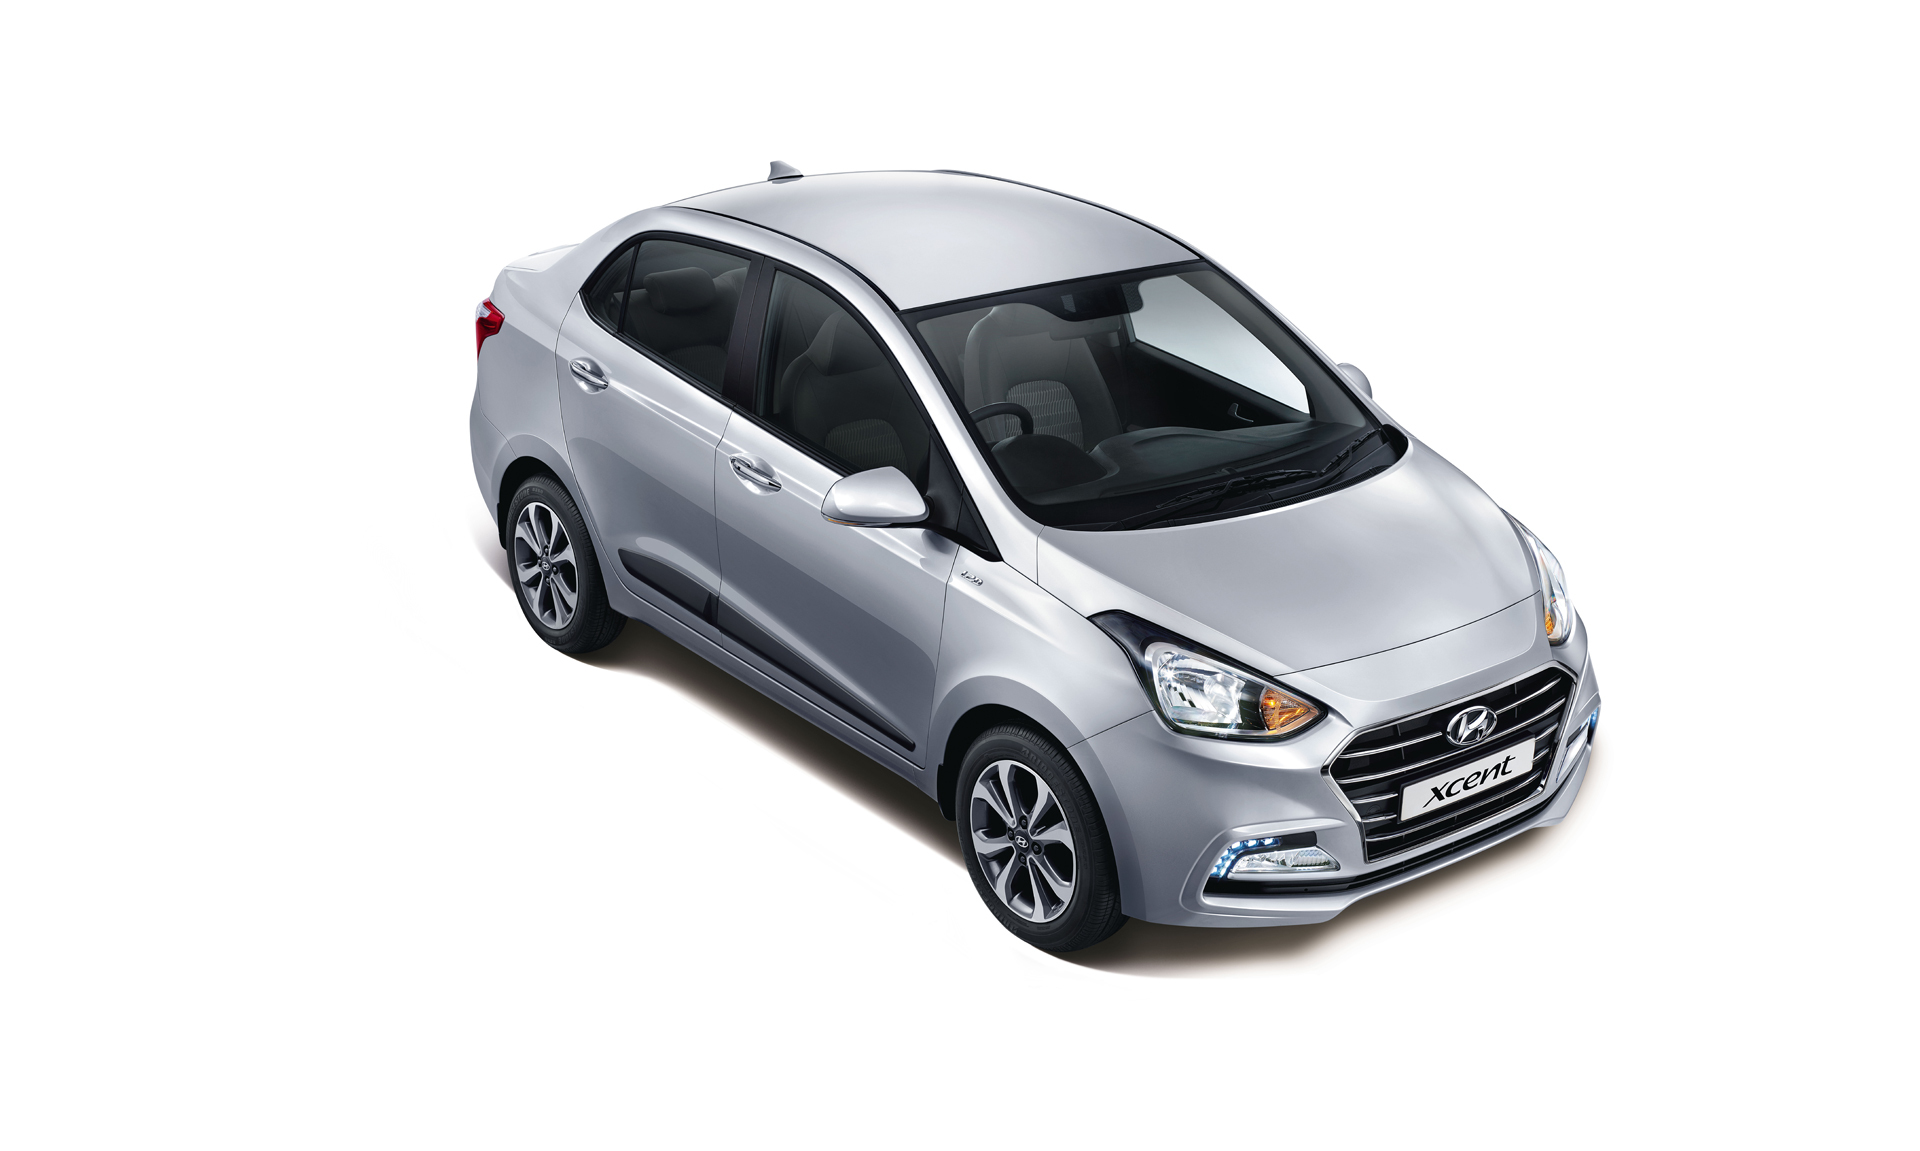 Hyundai upgrades its safety features for the Xcent